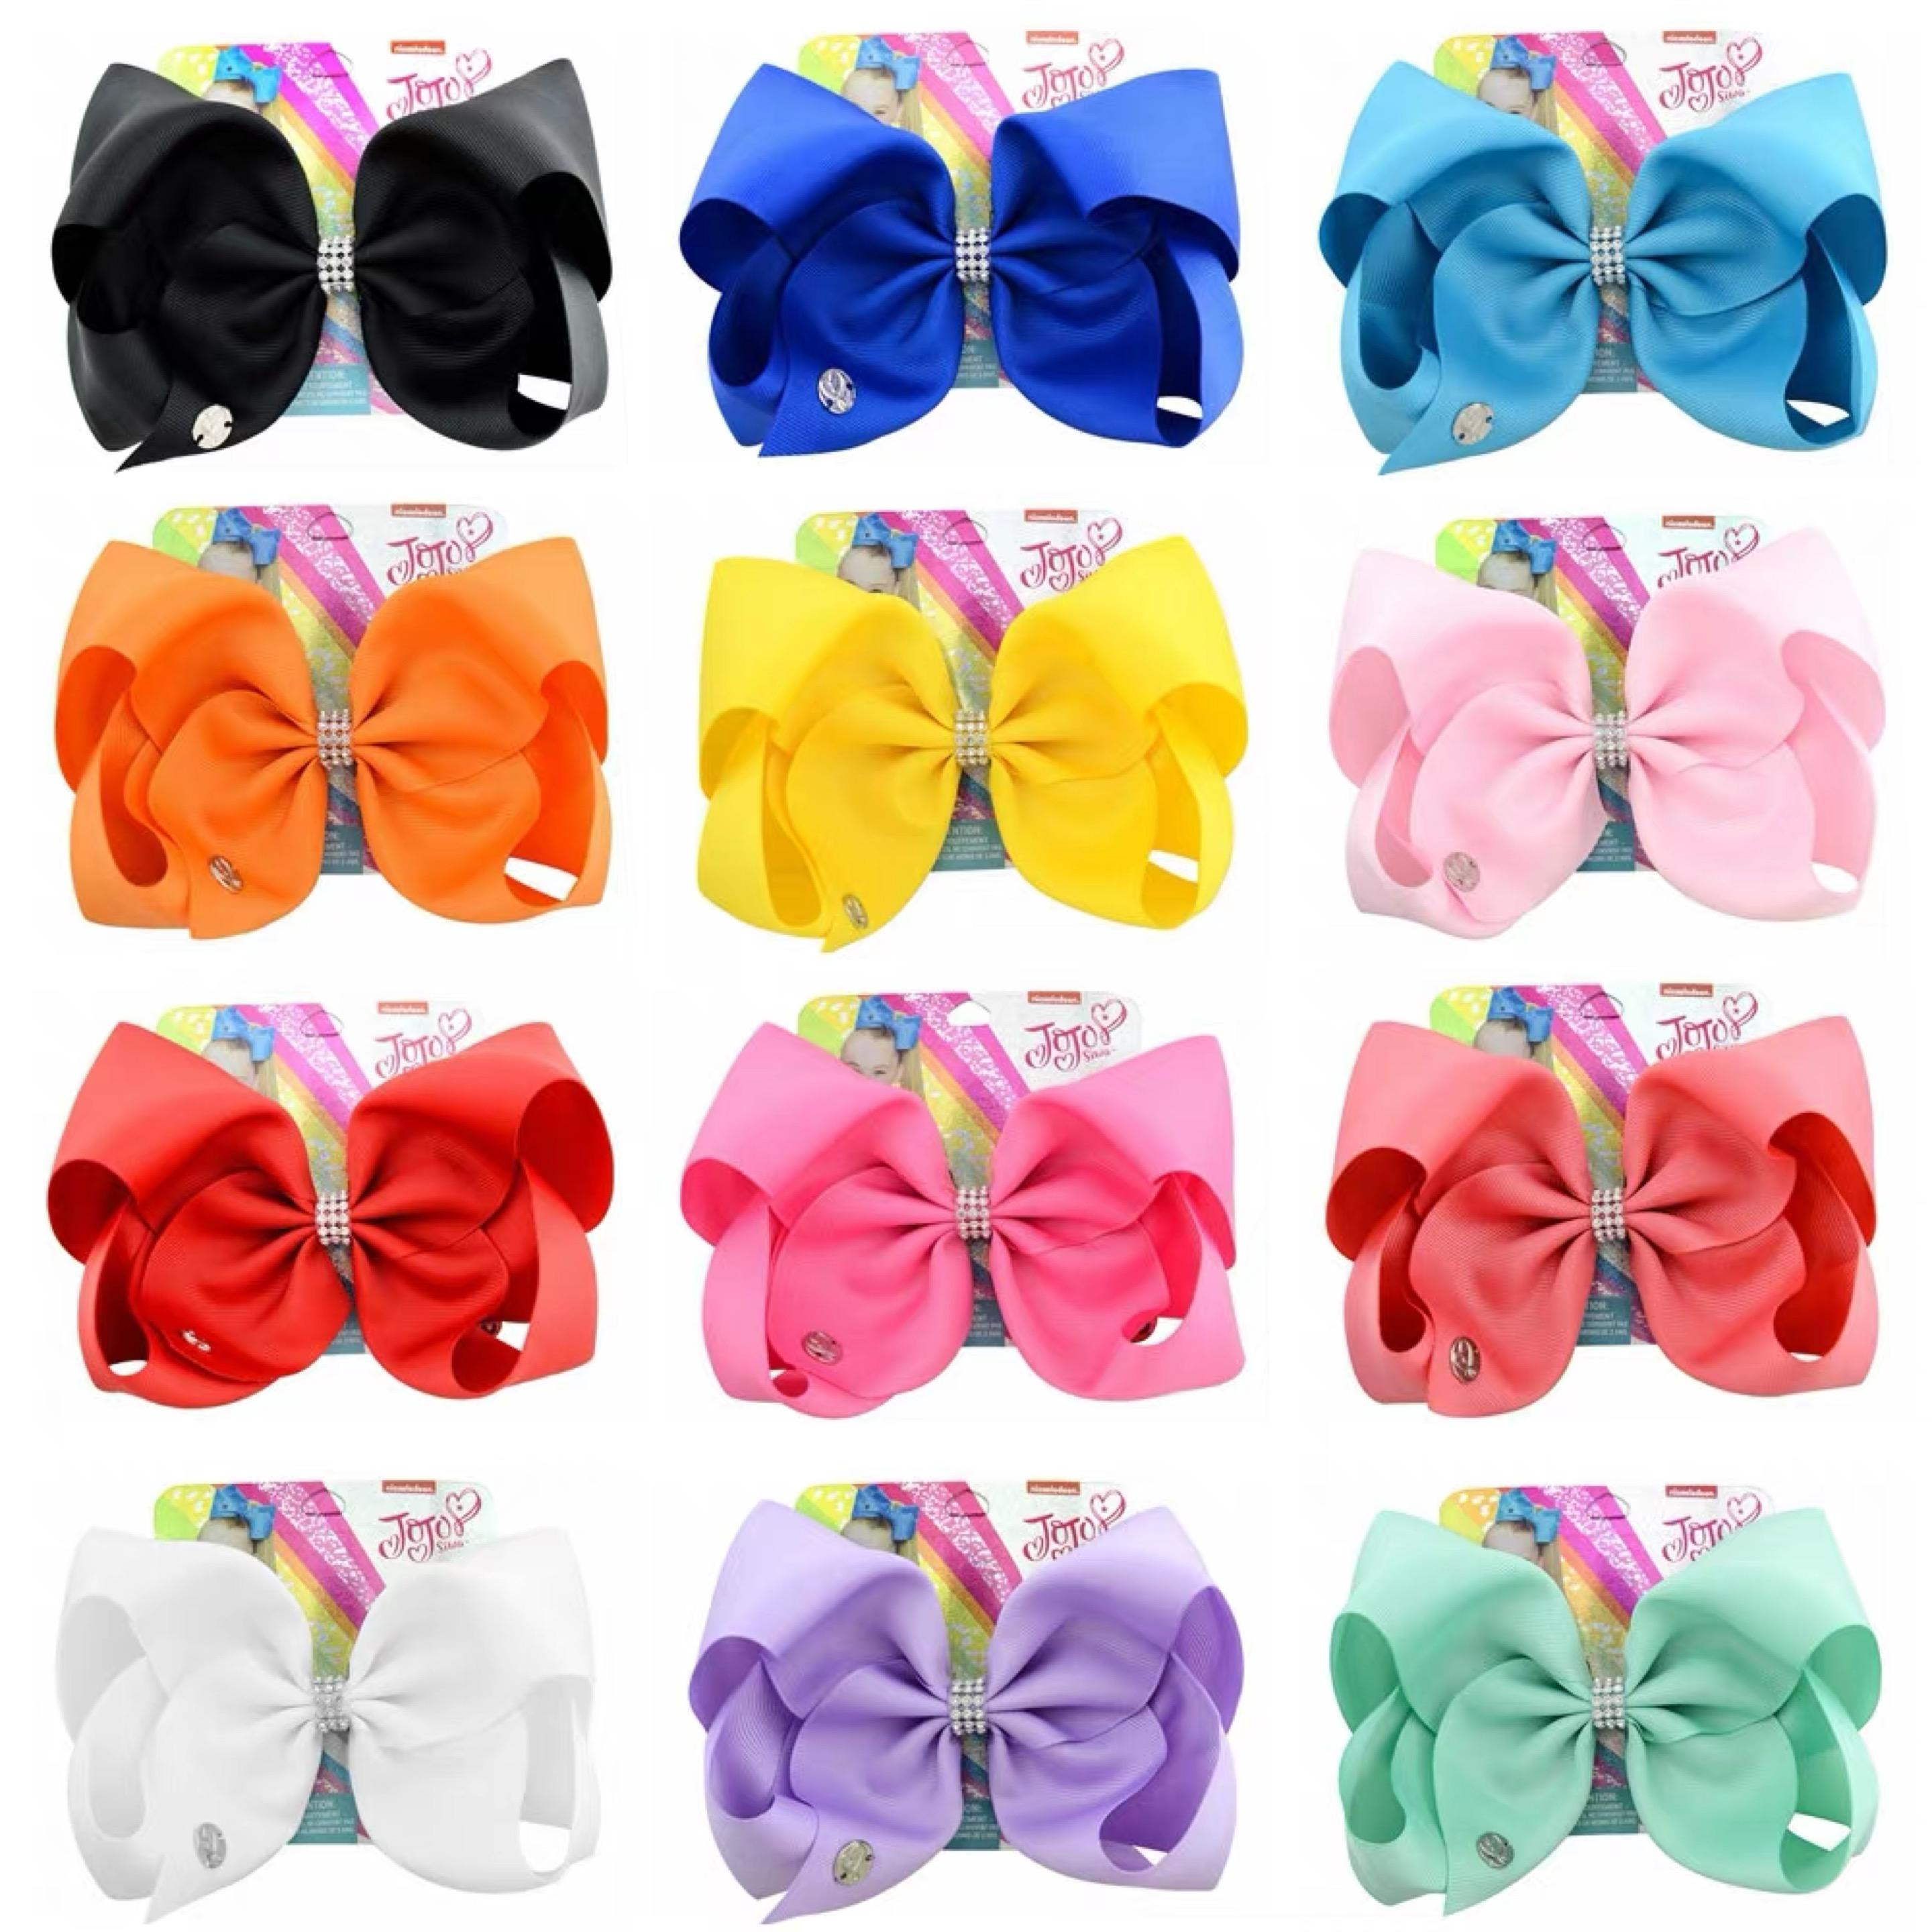 c9c3f9e72d675 Girls Hair Clips and Bands for sale - Girls Hair Accessories online ...